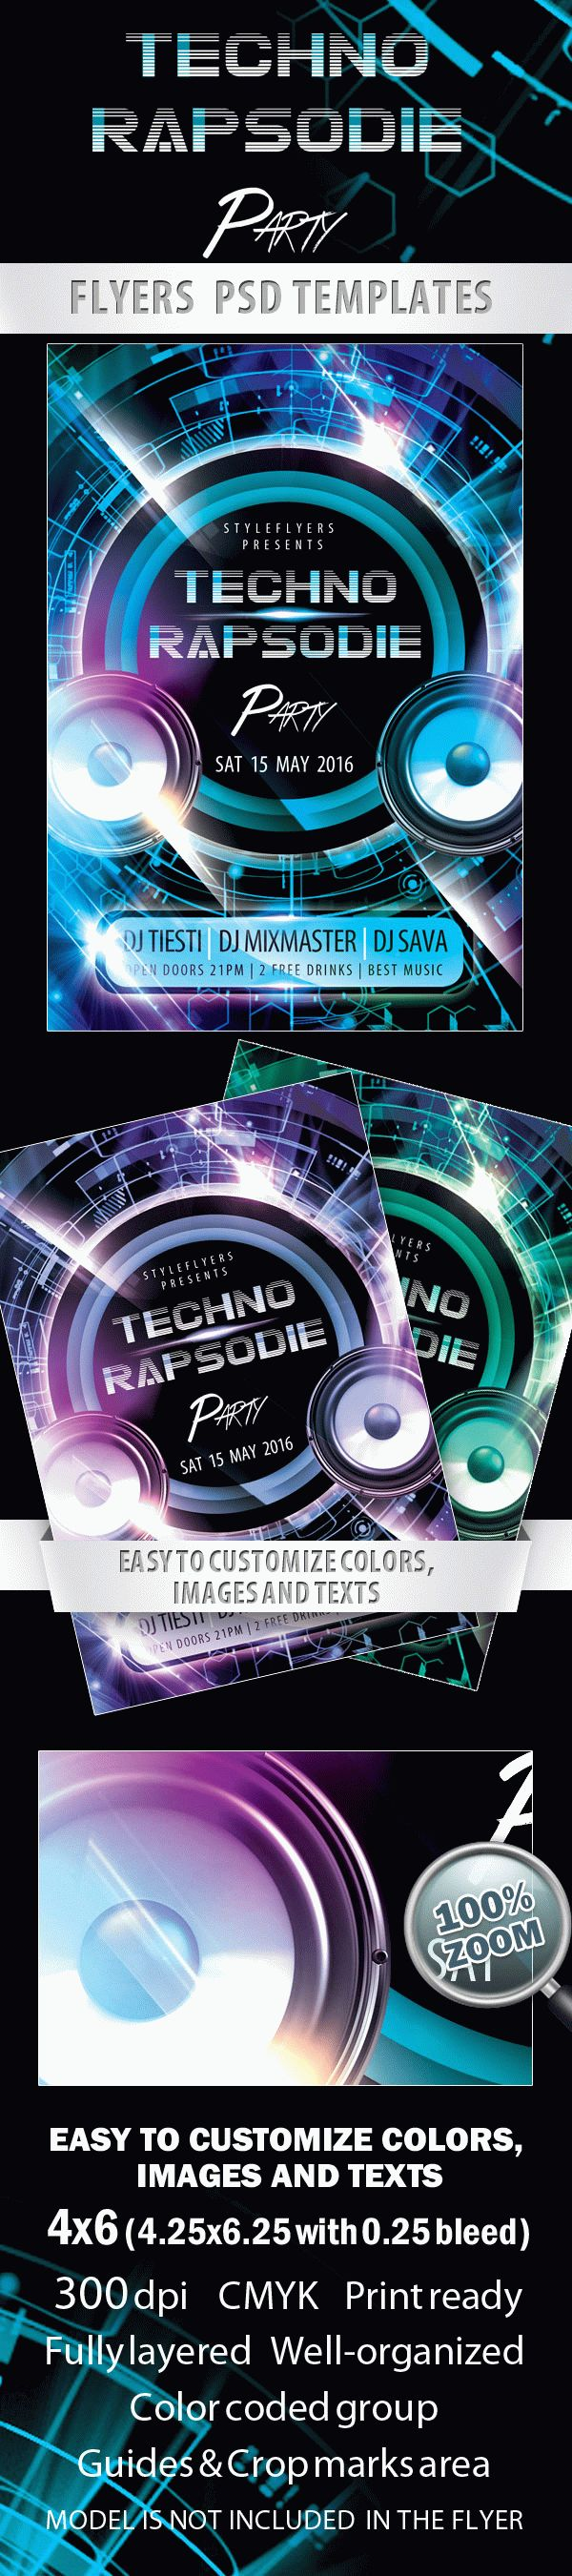 Techno Rapsodie Party Flyer